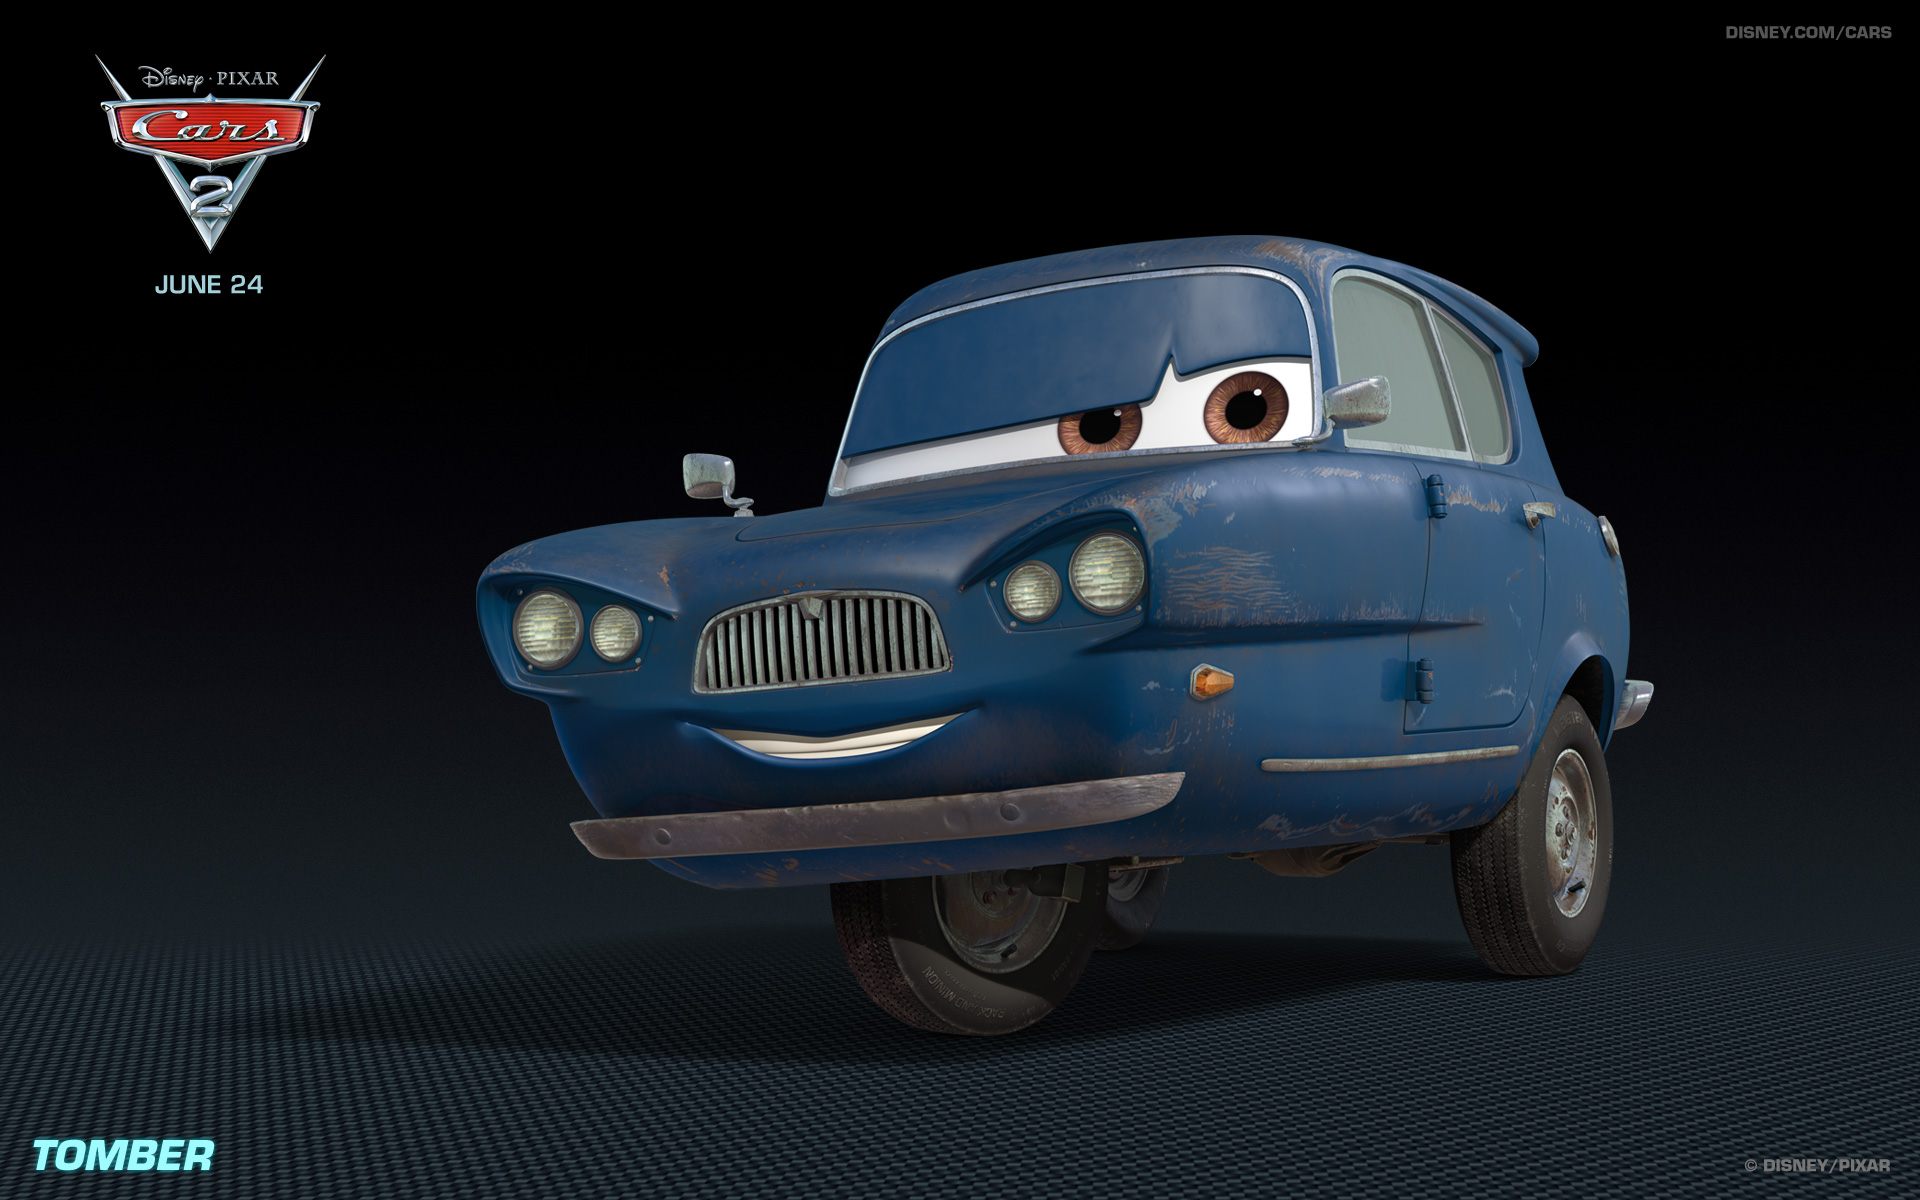 Cars That Start With A J >> Tomber | Pixar Cars Wiki | FANDOM powered by Wikia